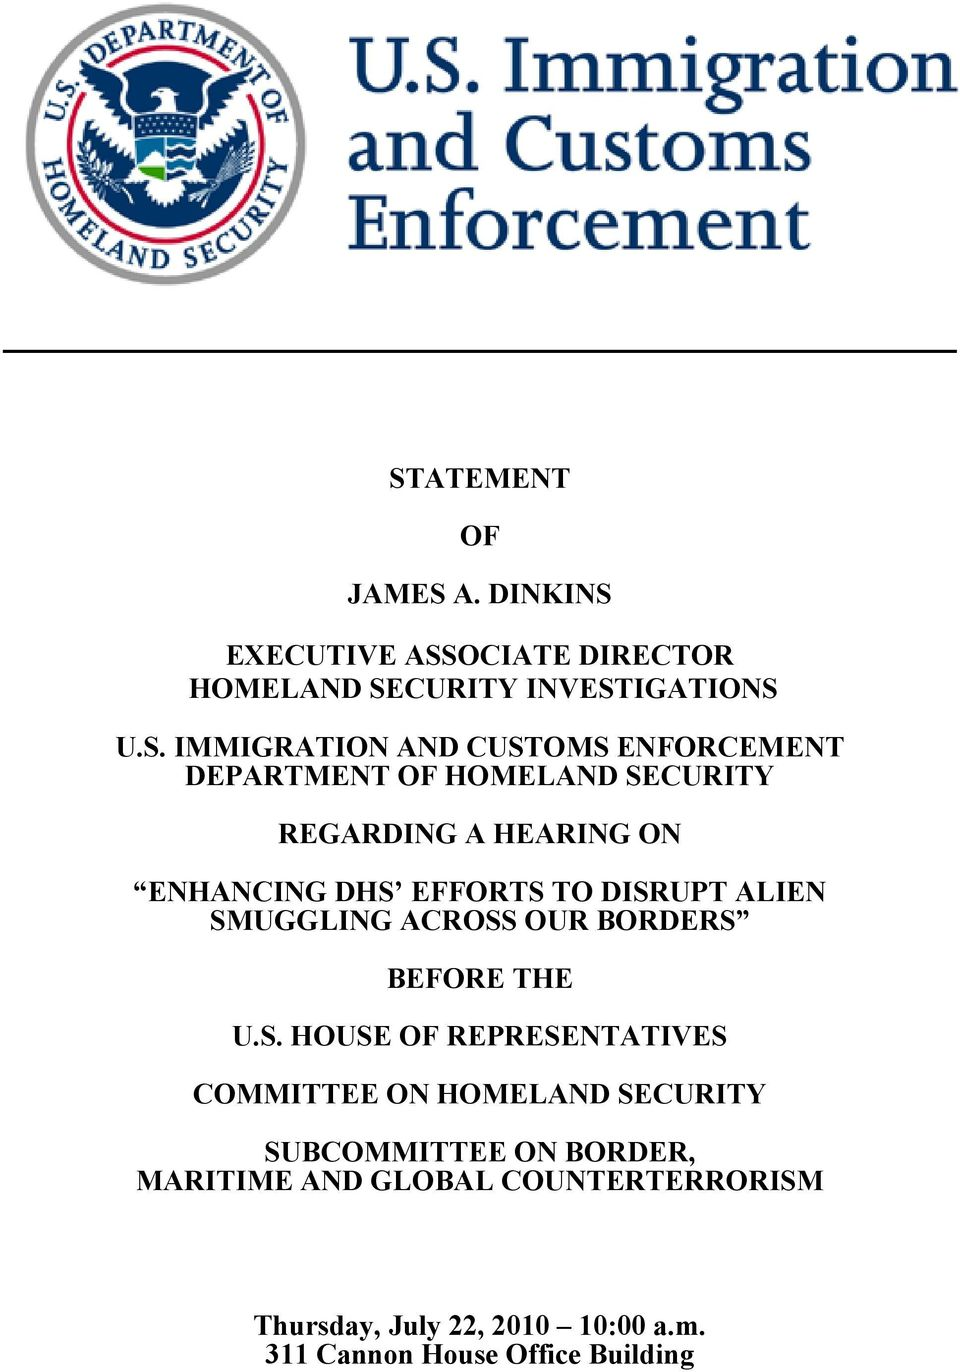 SMUGGLING ACROSS OUR BORDERS BEFORE THE U.S. HOUSE OF REPRESENTATIVES COMMITTEE ON HOMELAND SECURITY SUBCOMMITTEE